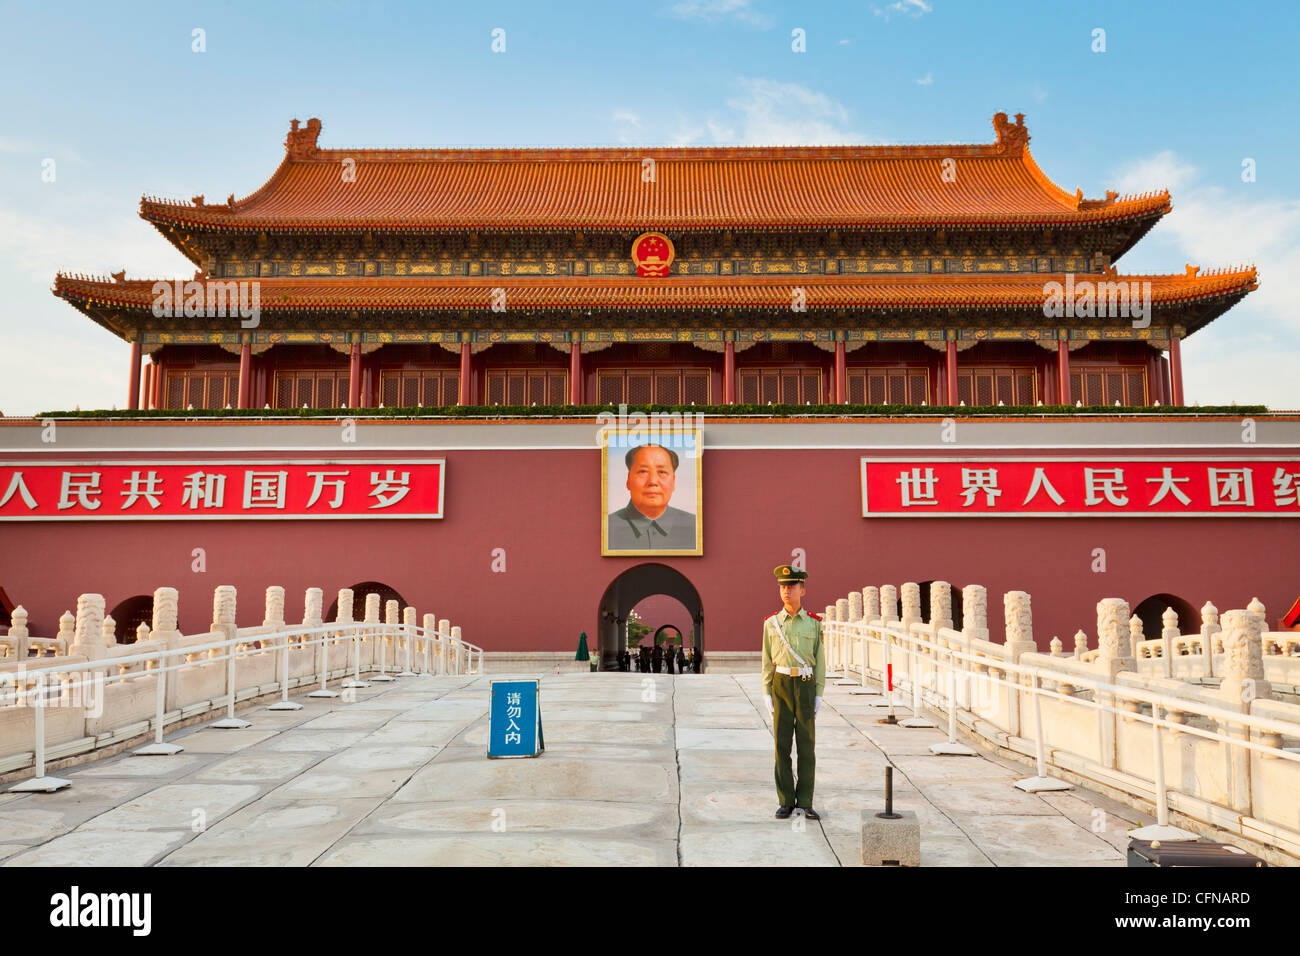 Soldier outside Tiananmen Tower and Chairman Mao's portrait, Gate of Heavenly Peace, Beijing, China, Asia - Stock Image